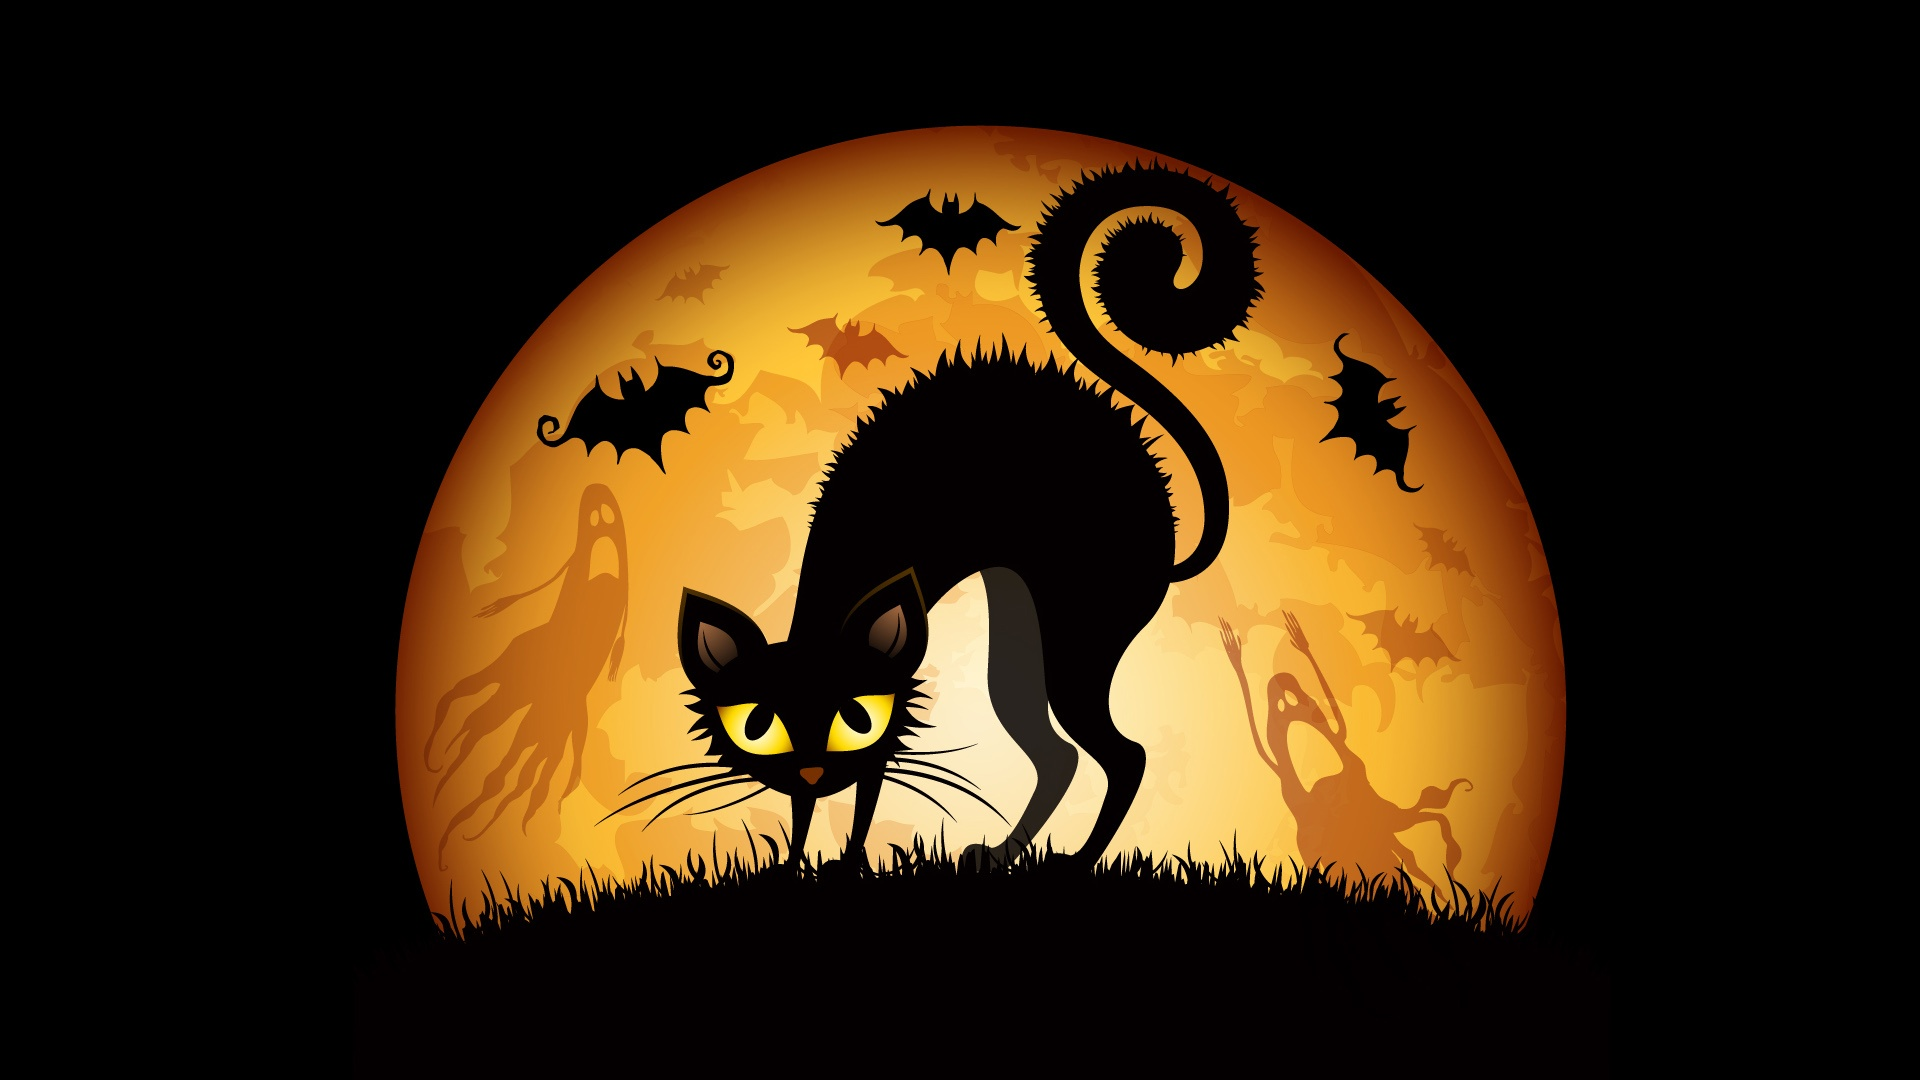 Halloween Cats Bats Wallpapers In Jpg Format For Free Download